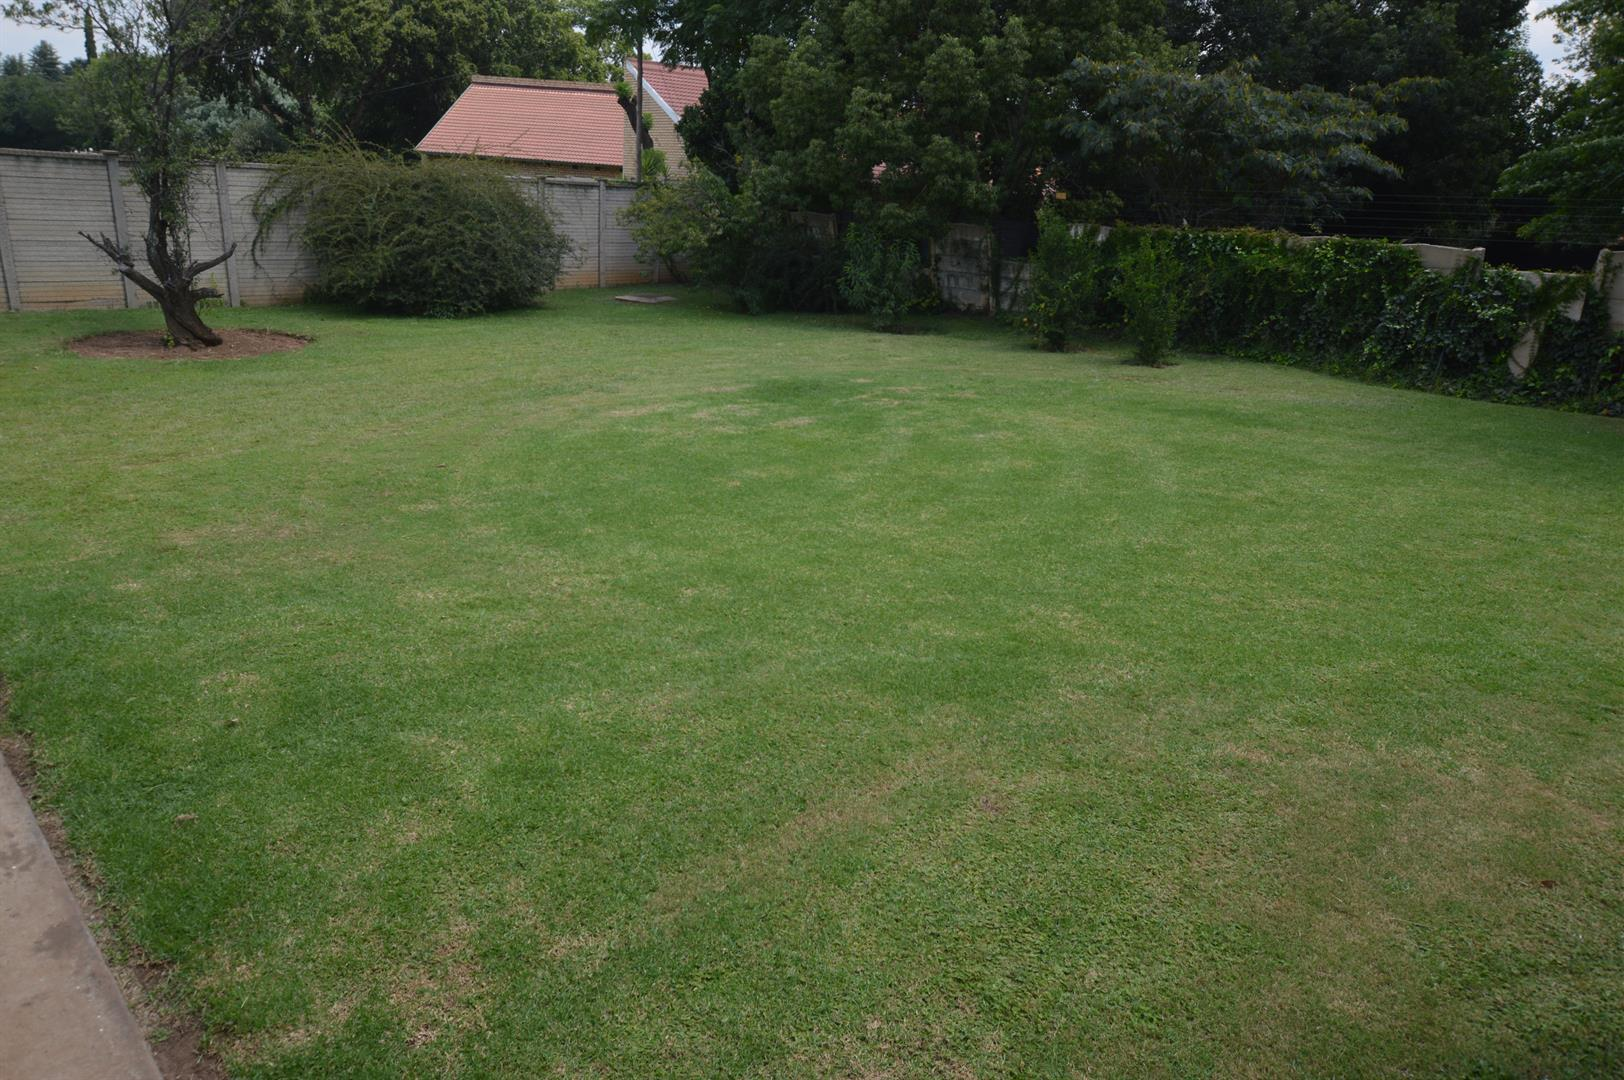 Vanderbijlpark Sw 5 for sale property. Ref No: 13443705. Picture no 28